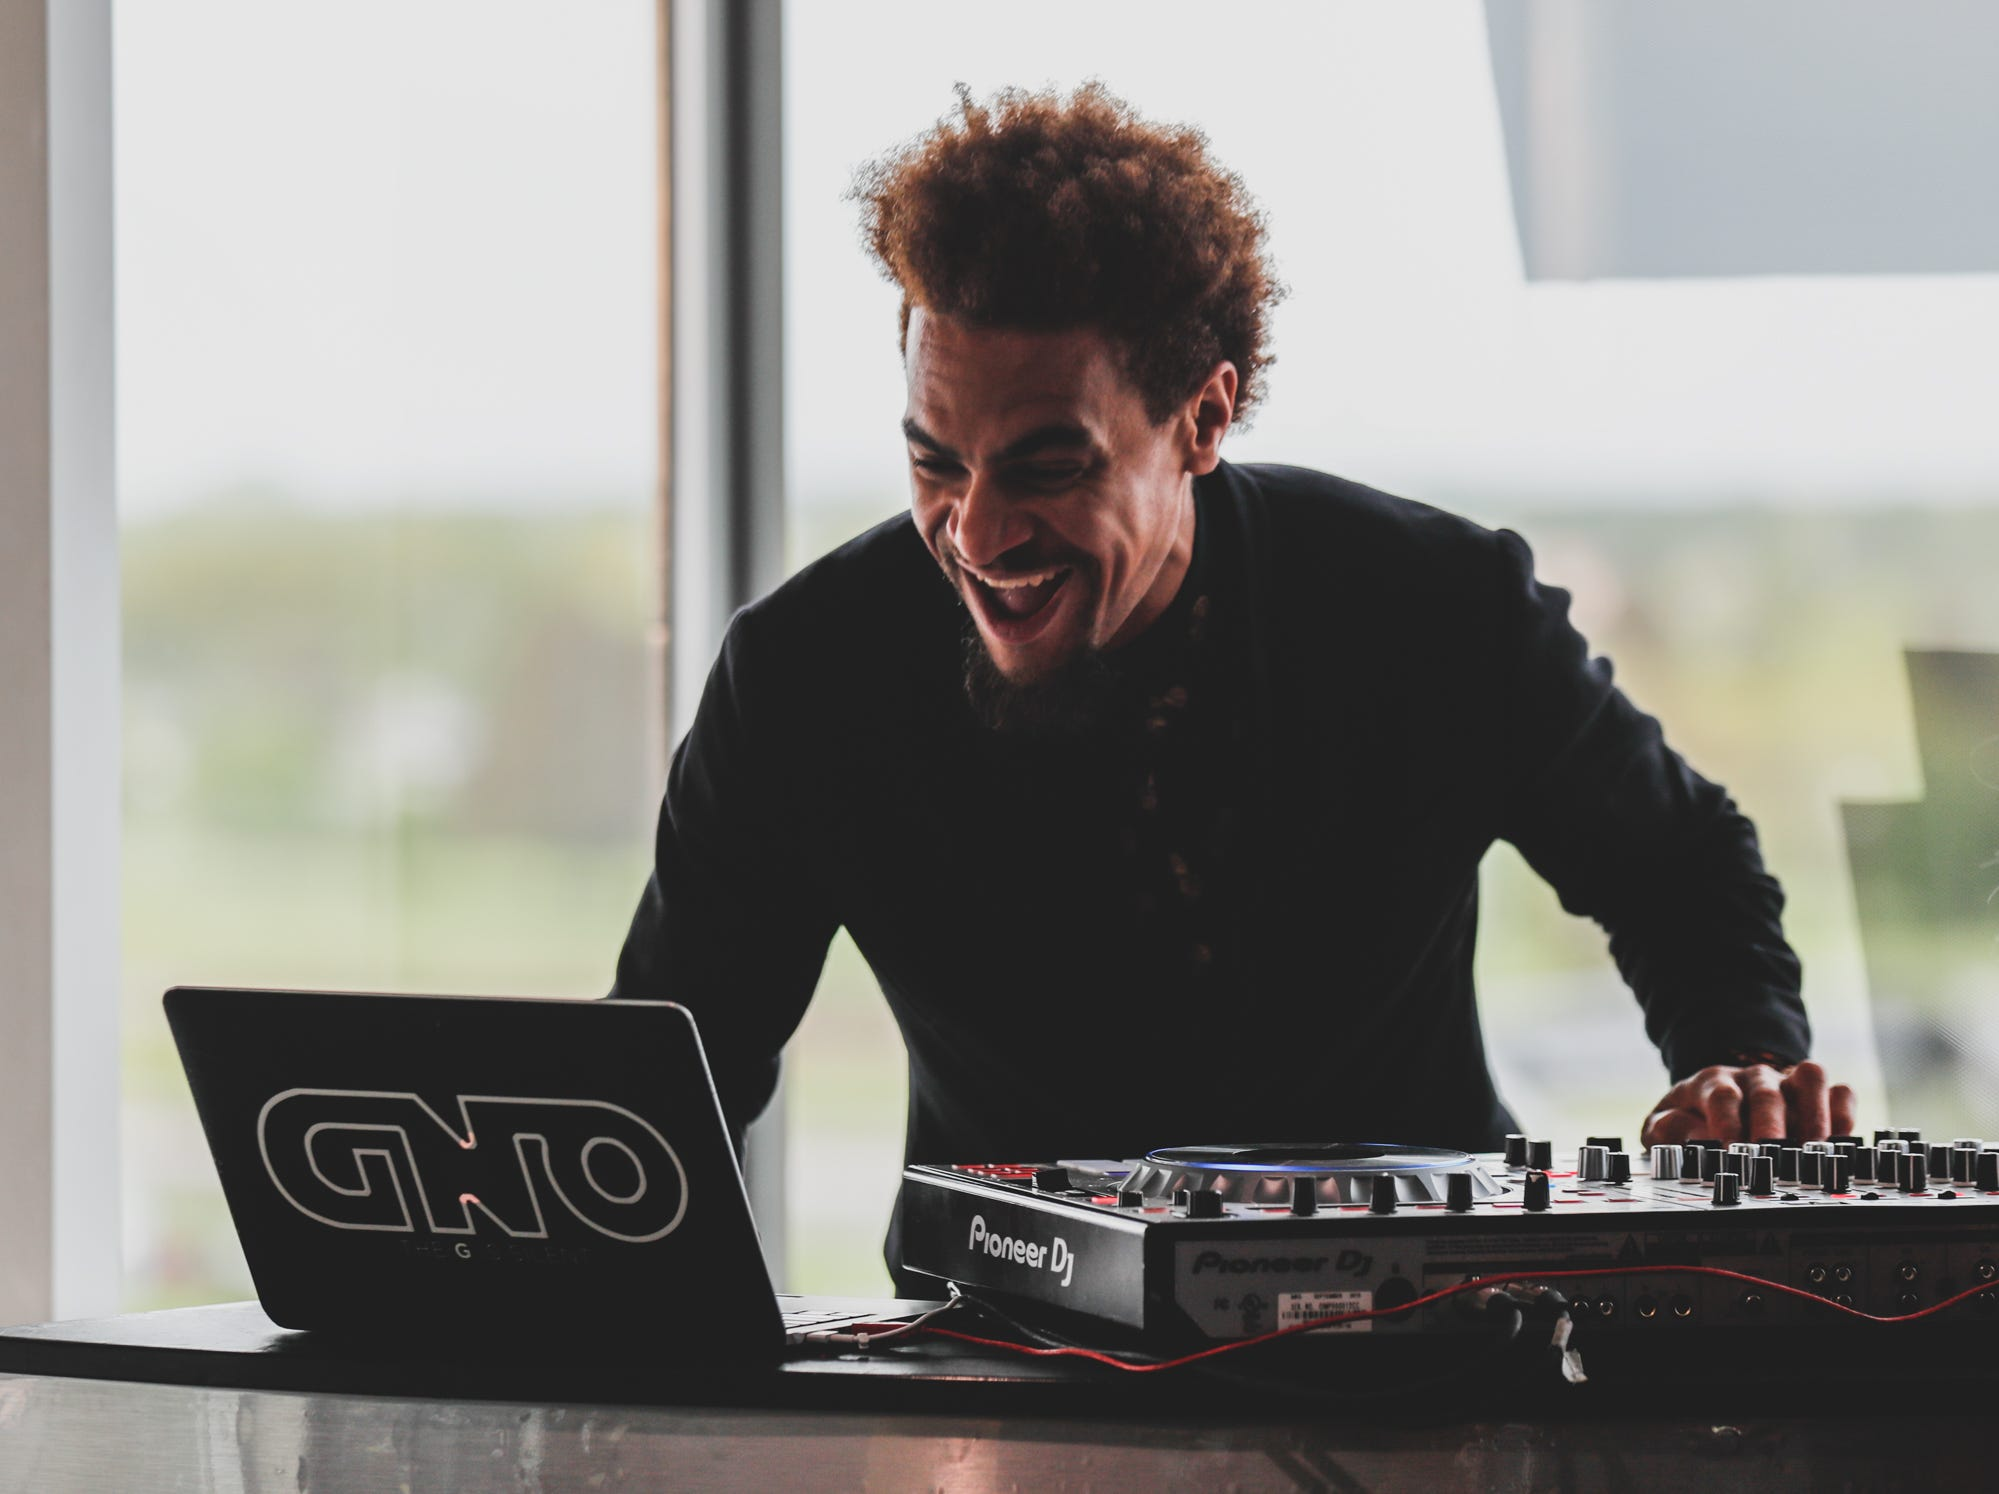 A DJ rocks the house during the Rev Indy fundraiser, held at the Indianapolis Motor Speedway on Saturday, May 4, 2019. Funds raised support the IU Health Foundation statewide and the IU Health Emergency Medical Center at IMS.